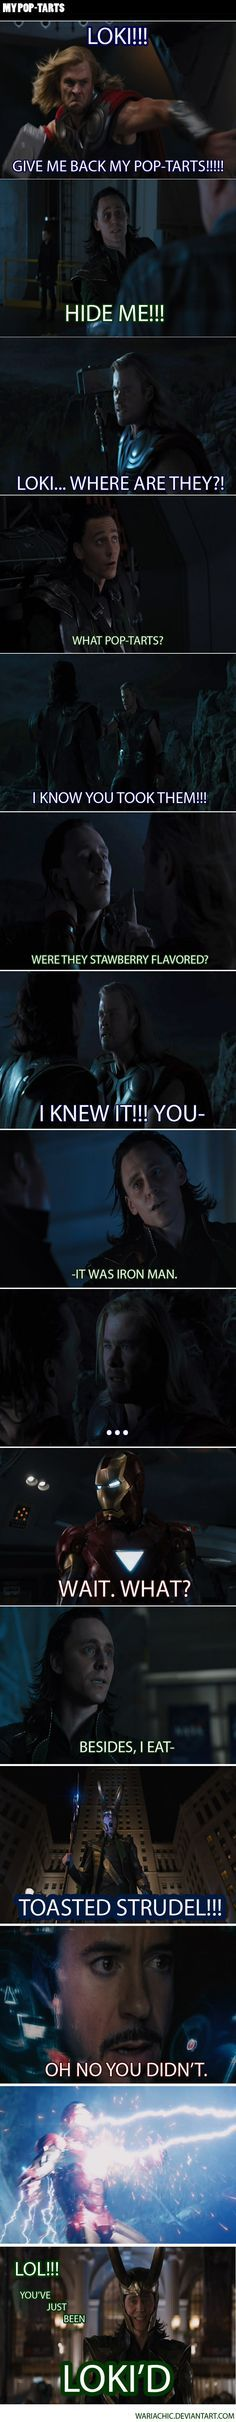 CAN'T STOP LAUGHING!!!! GIVE ME BACK MY POP-TARTS!..... you have just been Loki'd ;)